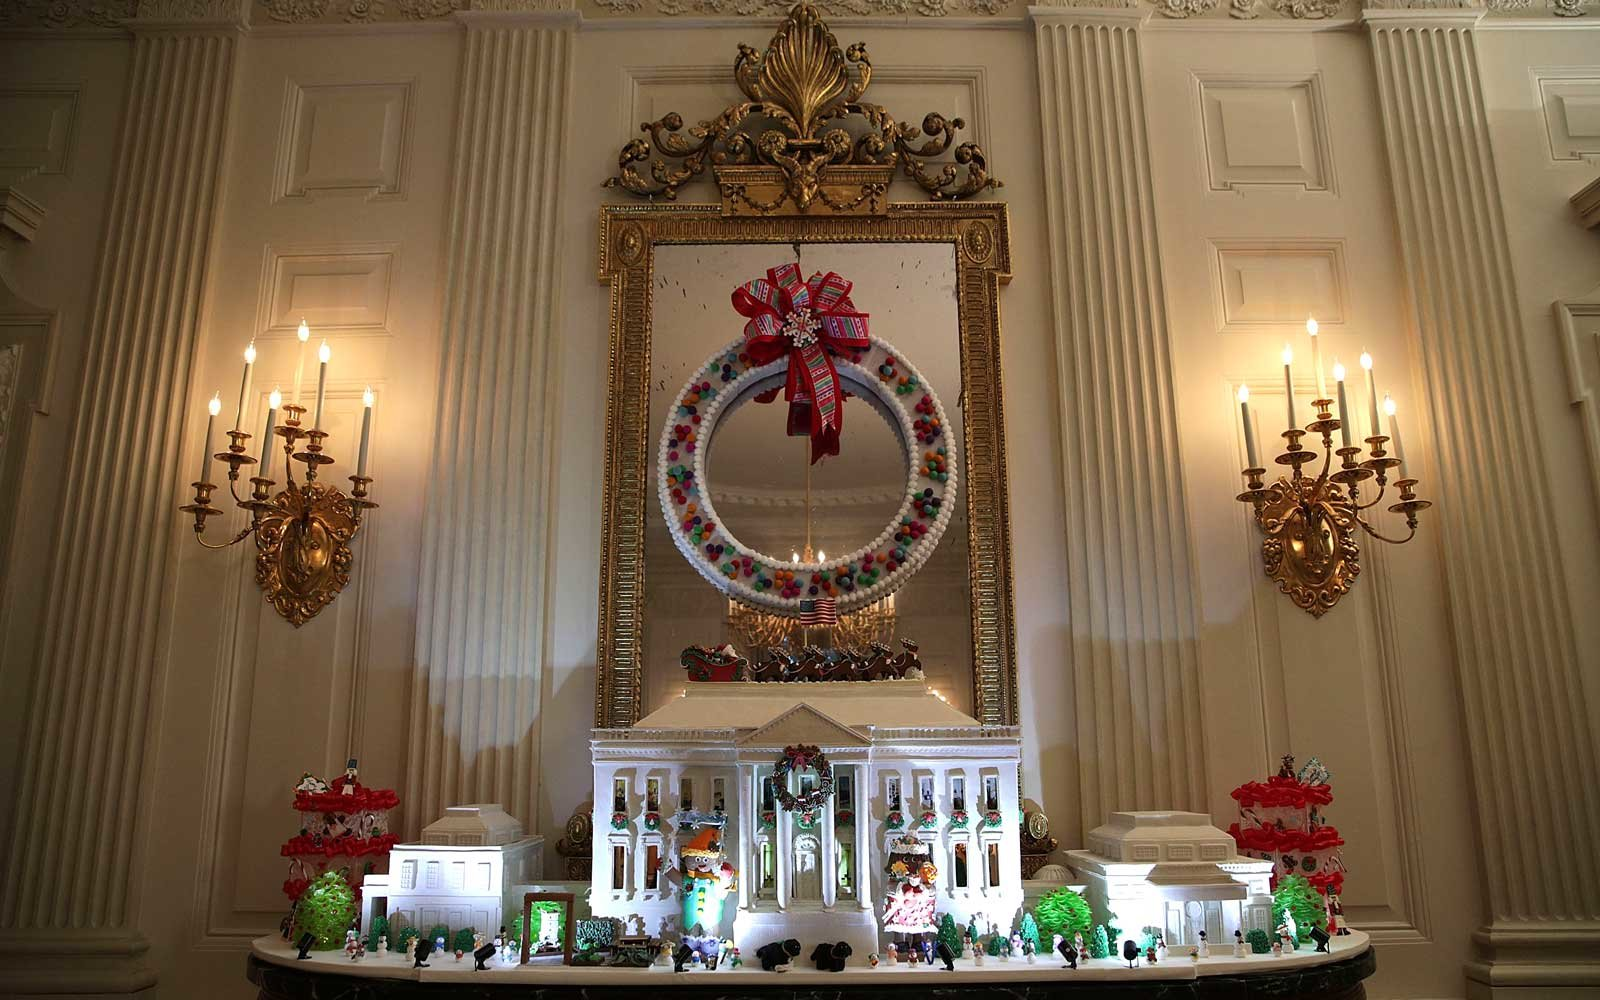 The white house holiday decorations for the obama family 39 s - Pictures of homes decorated for christmas on the inside ...